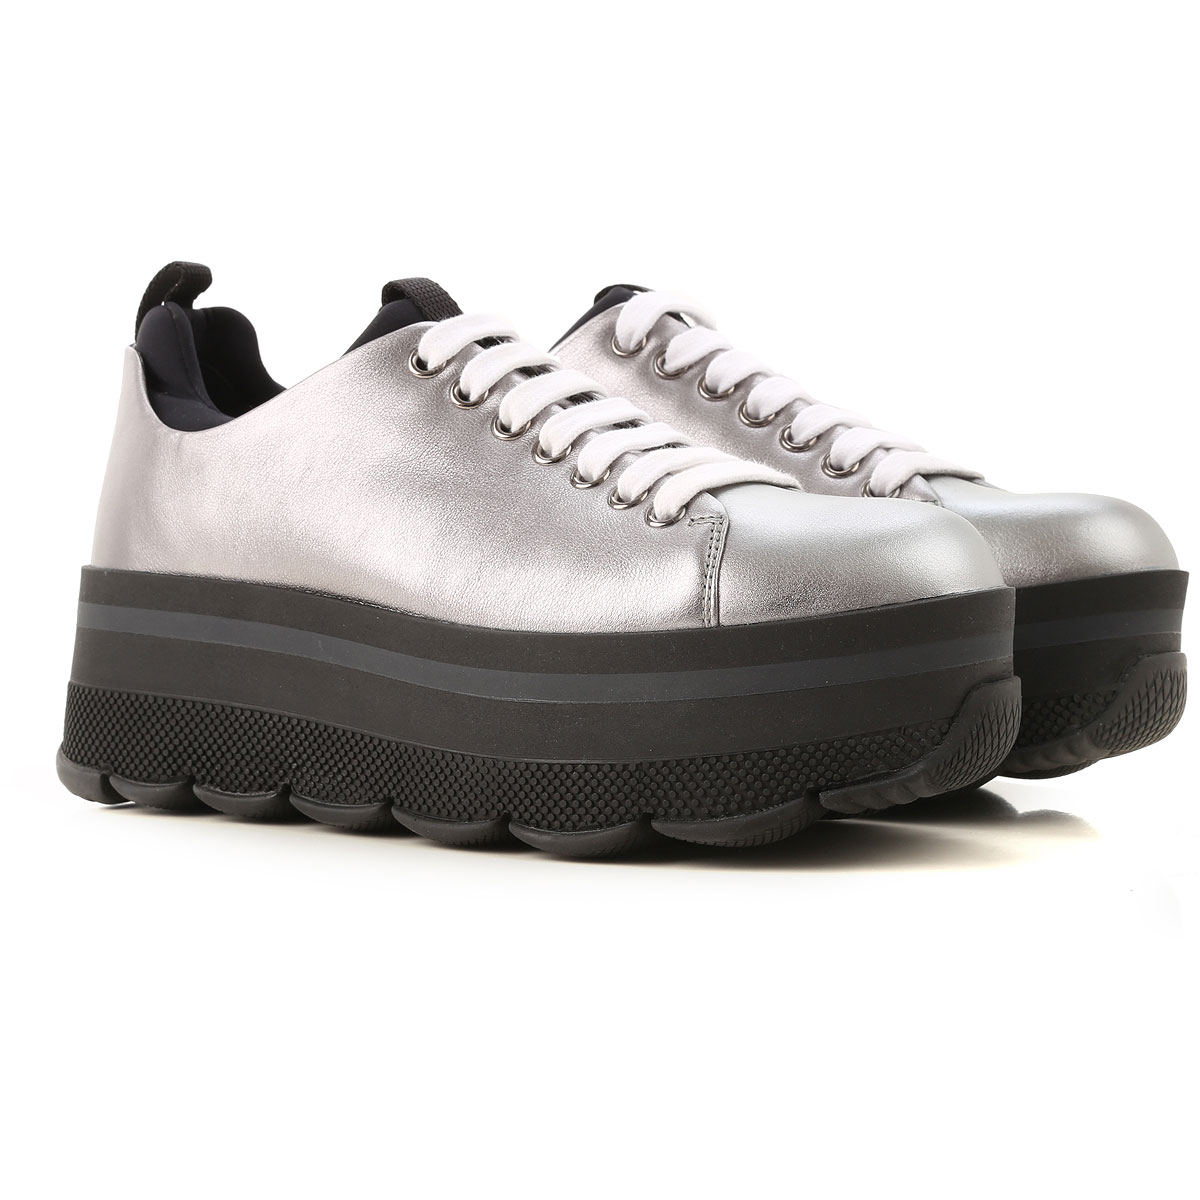 Prada Sneakers for Women in Outlet Steel USA - GOOFASH